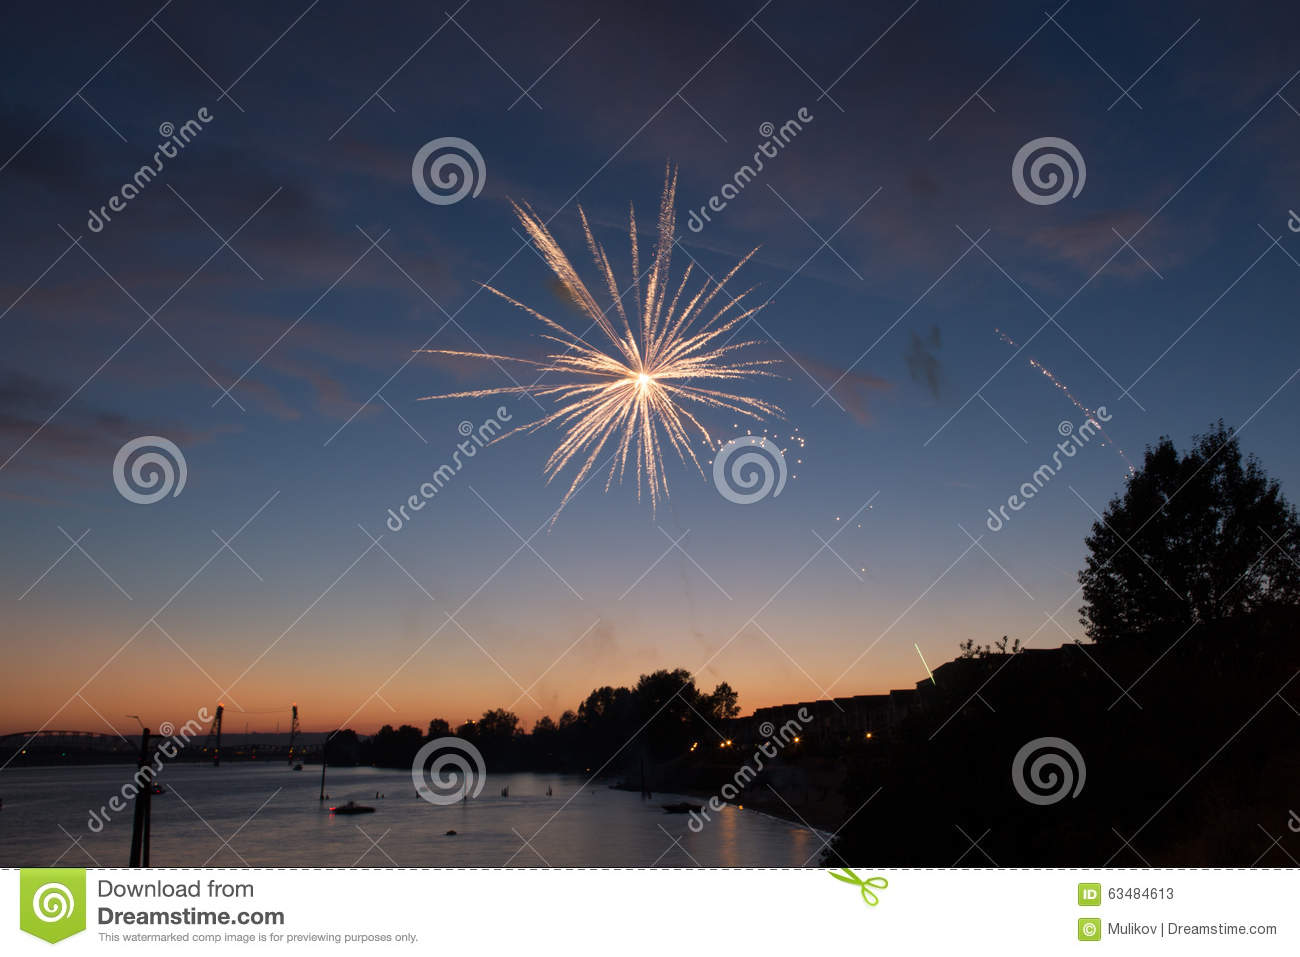 Wallpaper Salute Sky Holiday Colorful 3376x4220: 4th July Fireworks. Fireworks Display On Dark Sky